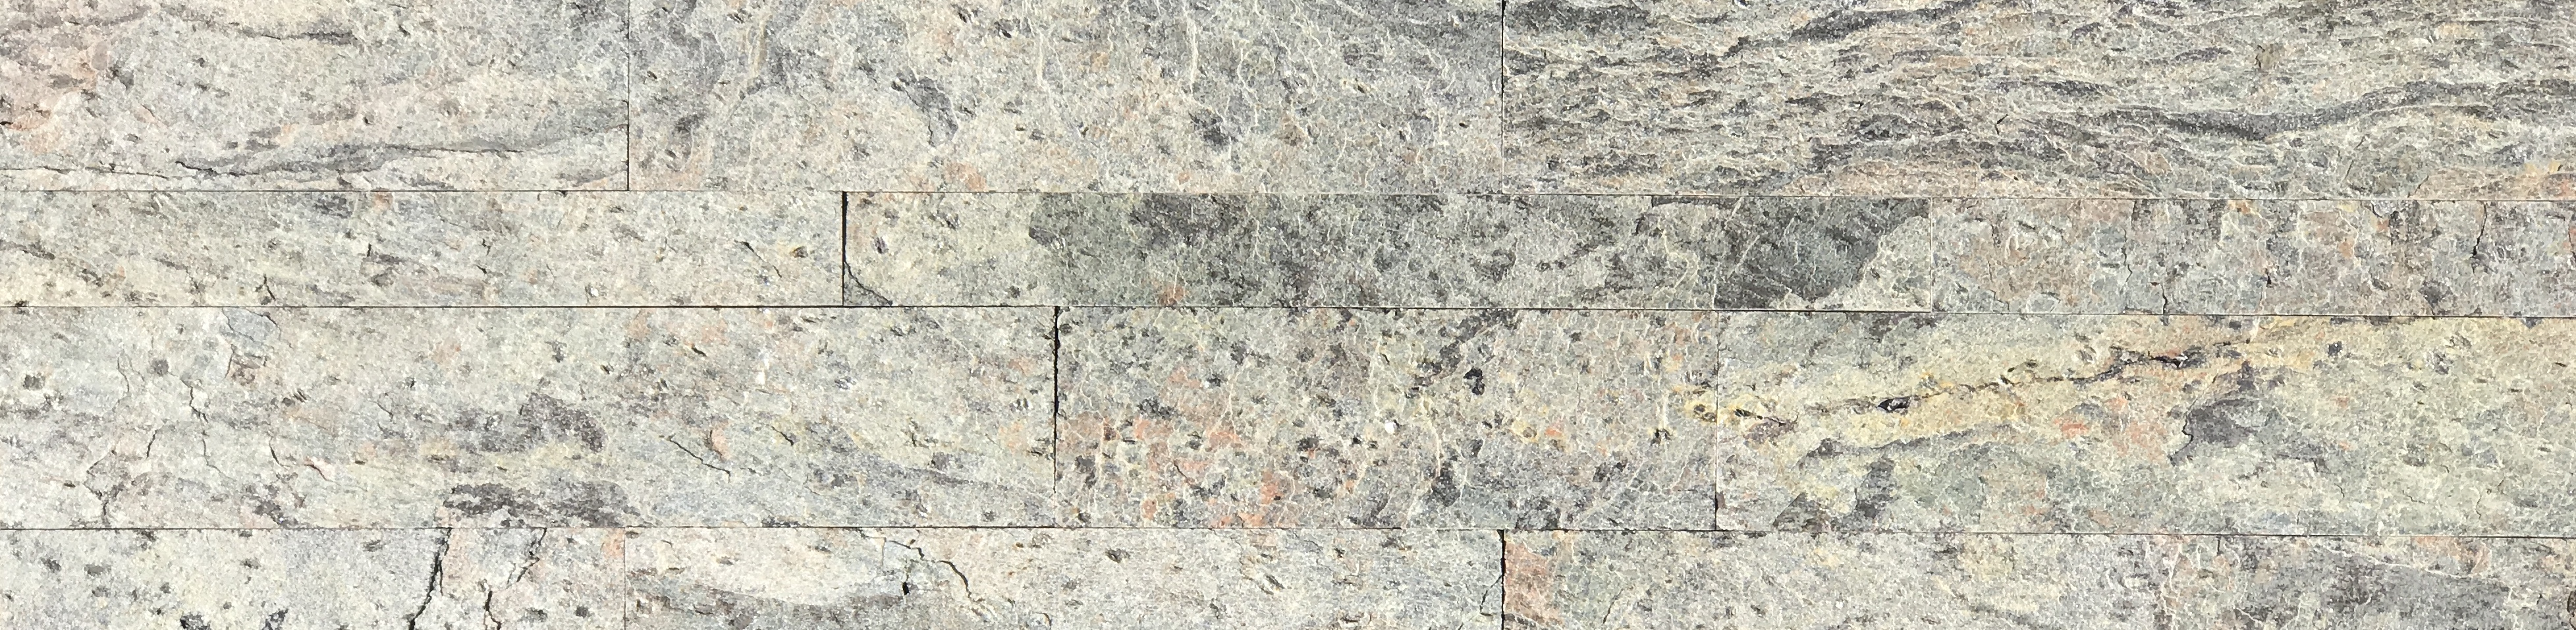 Florida Green Slimline Ledgestone Panel Image